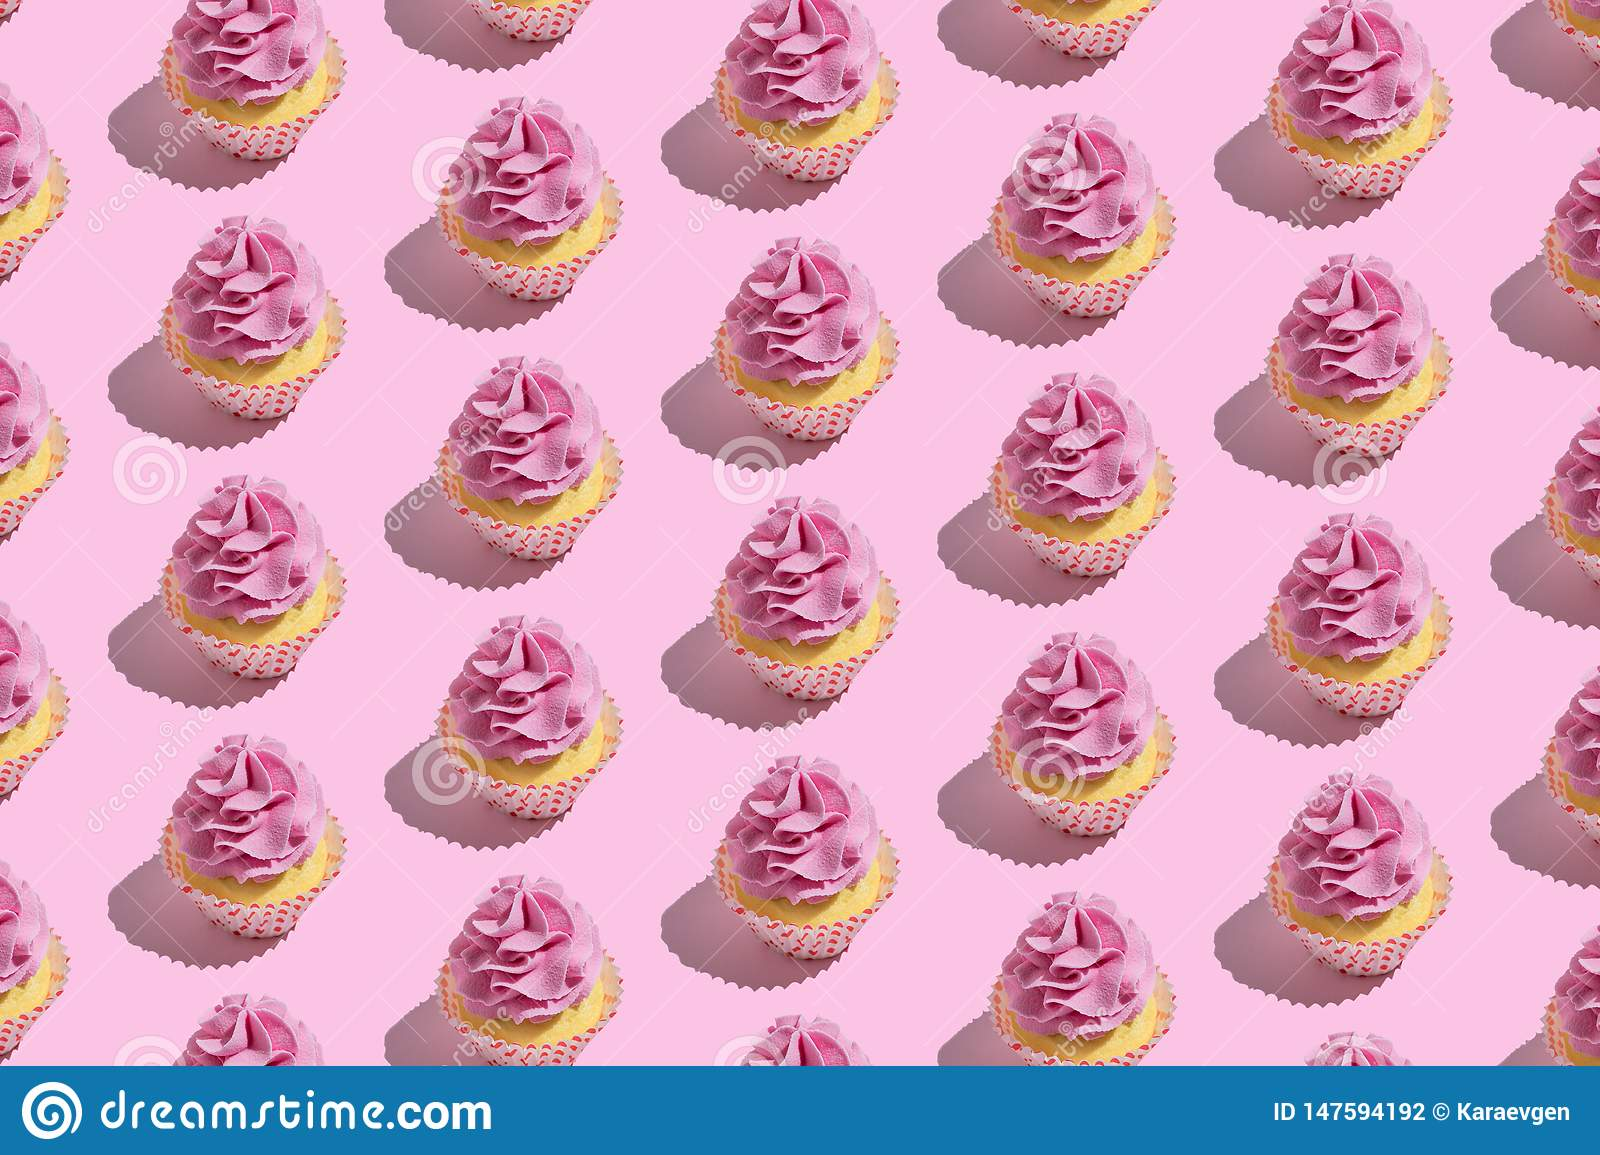 Colorful cupcake pattern on pastel pink background. Creative minimal party concept